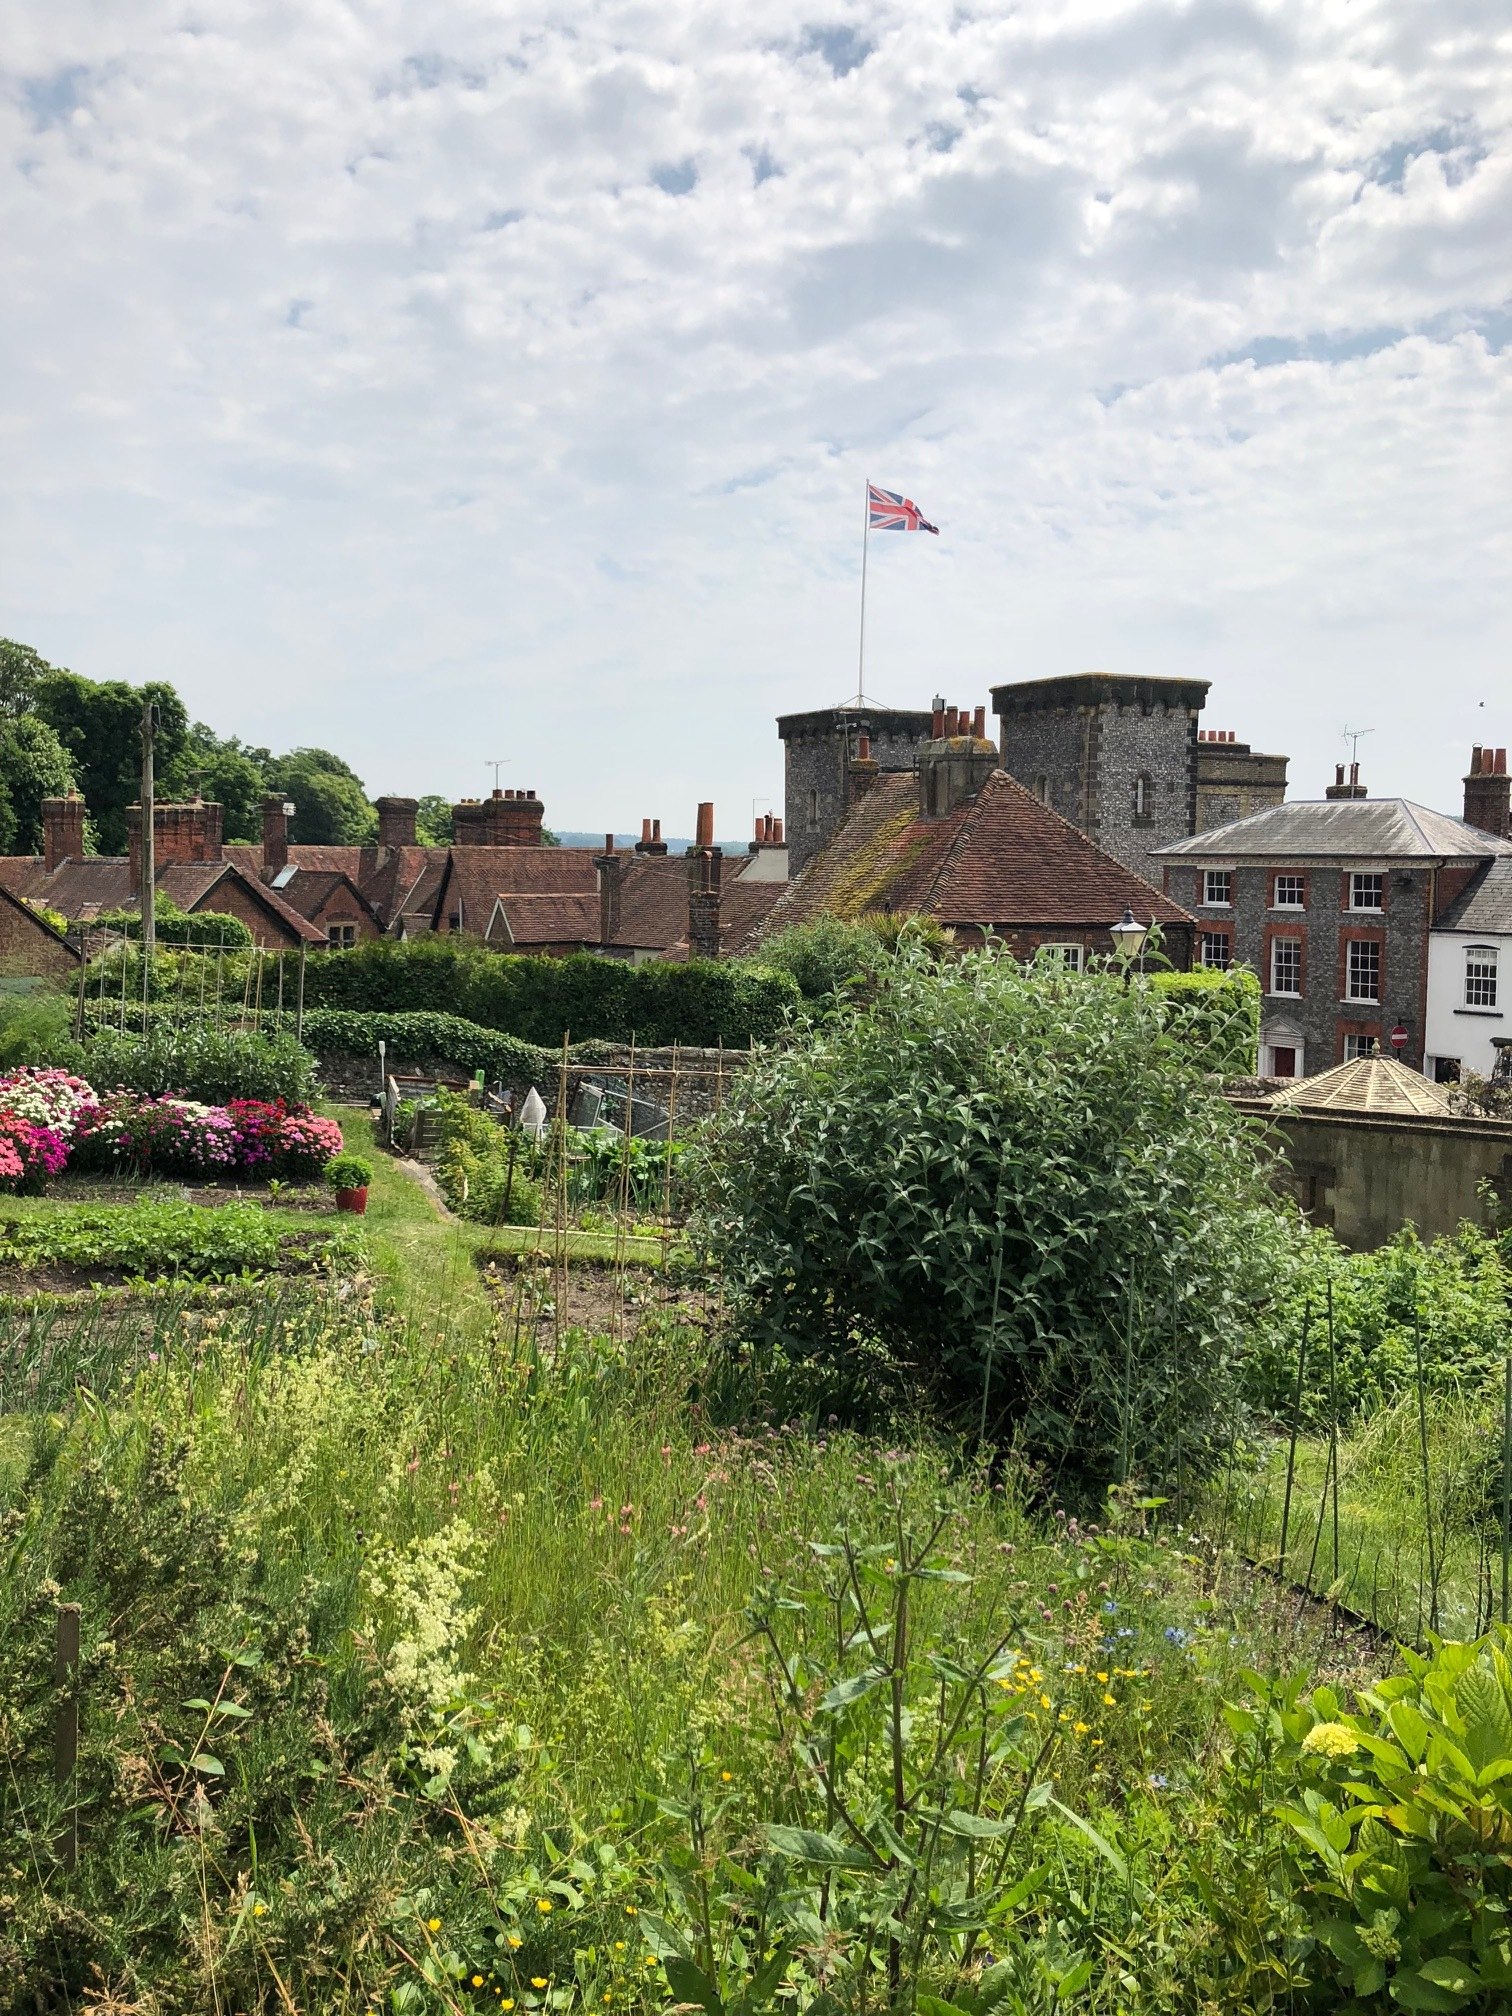 Another view from Felicity's allotment. I want to live there.